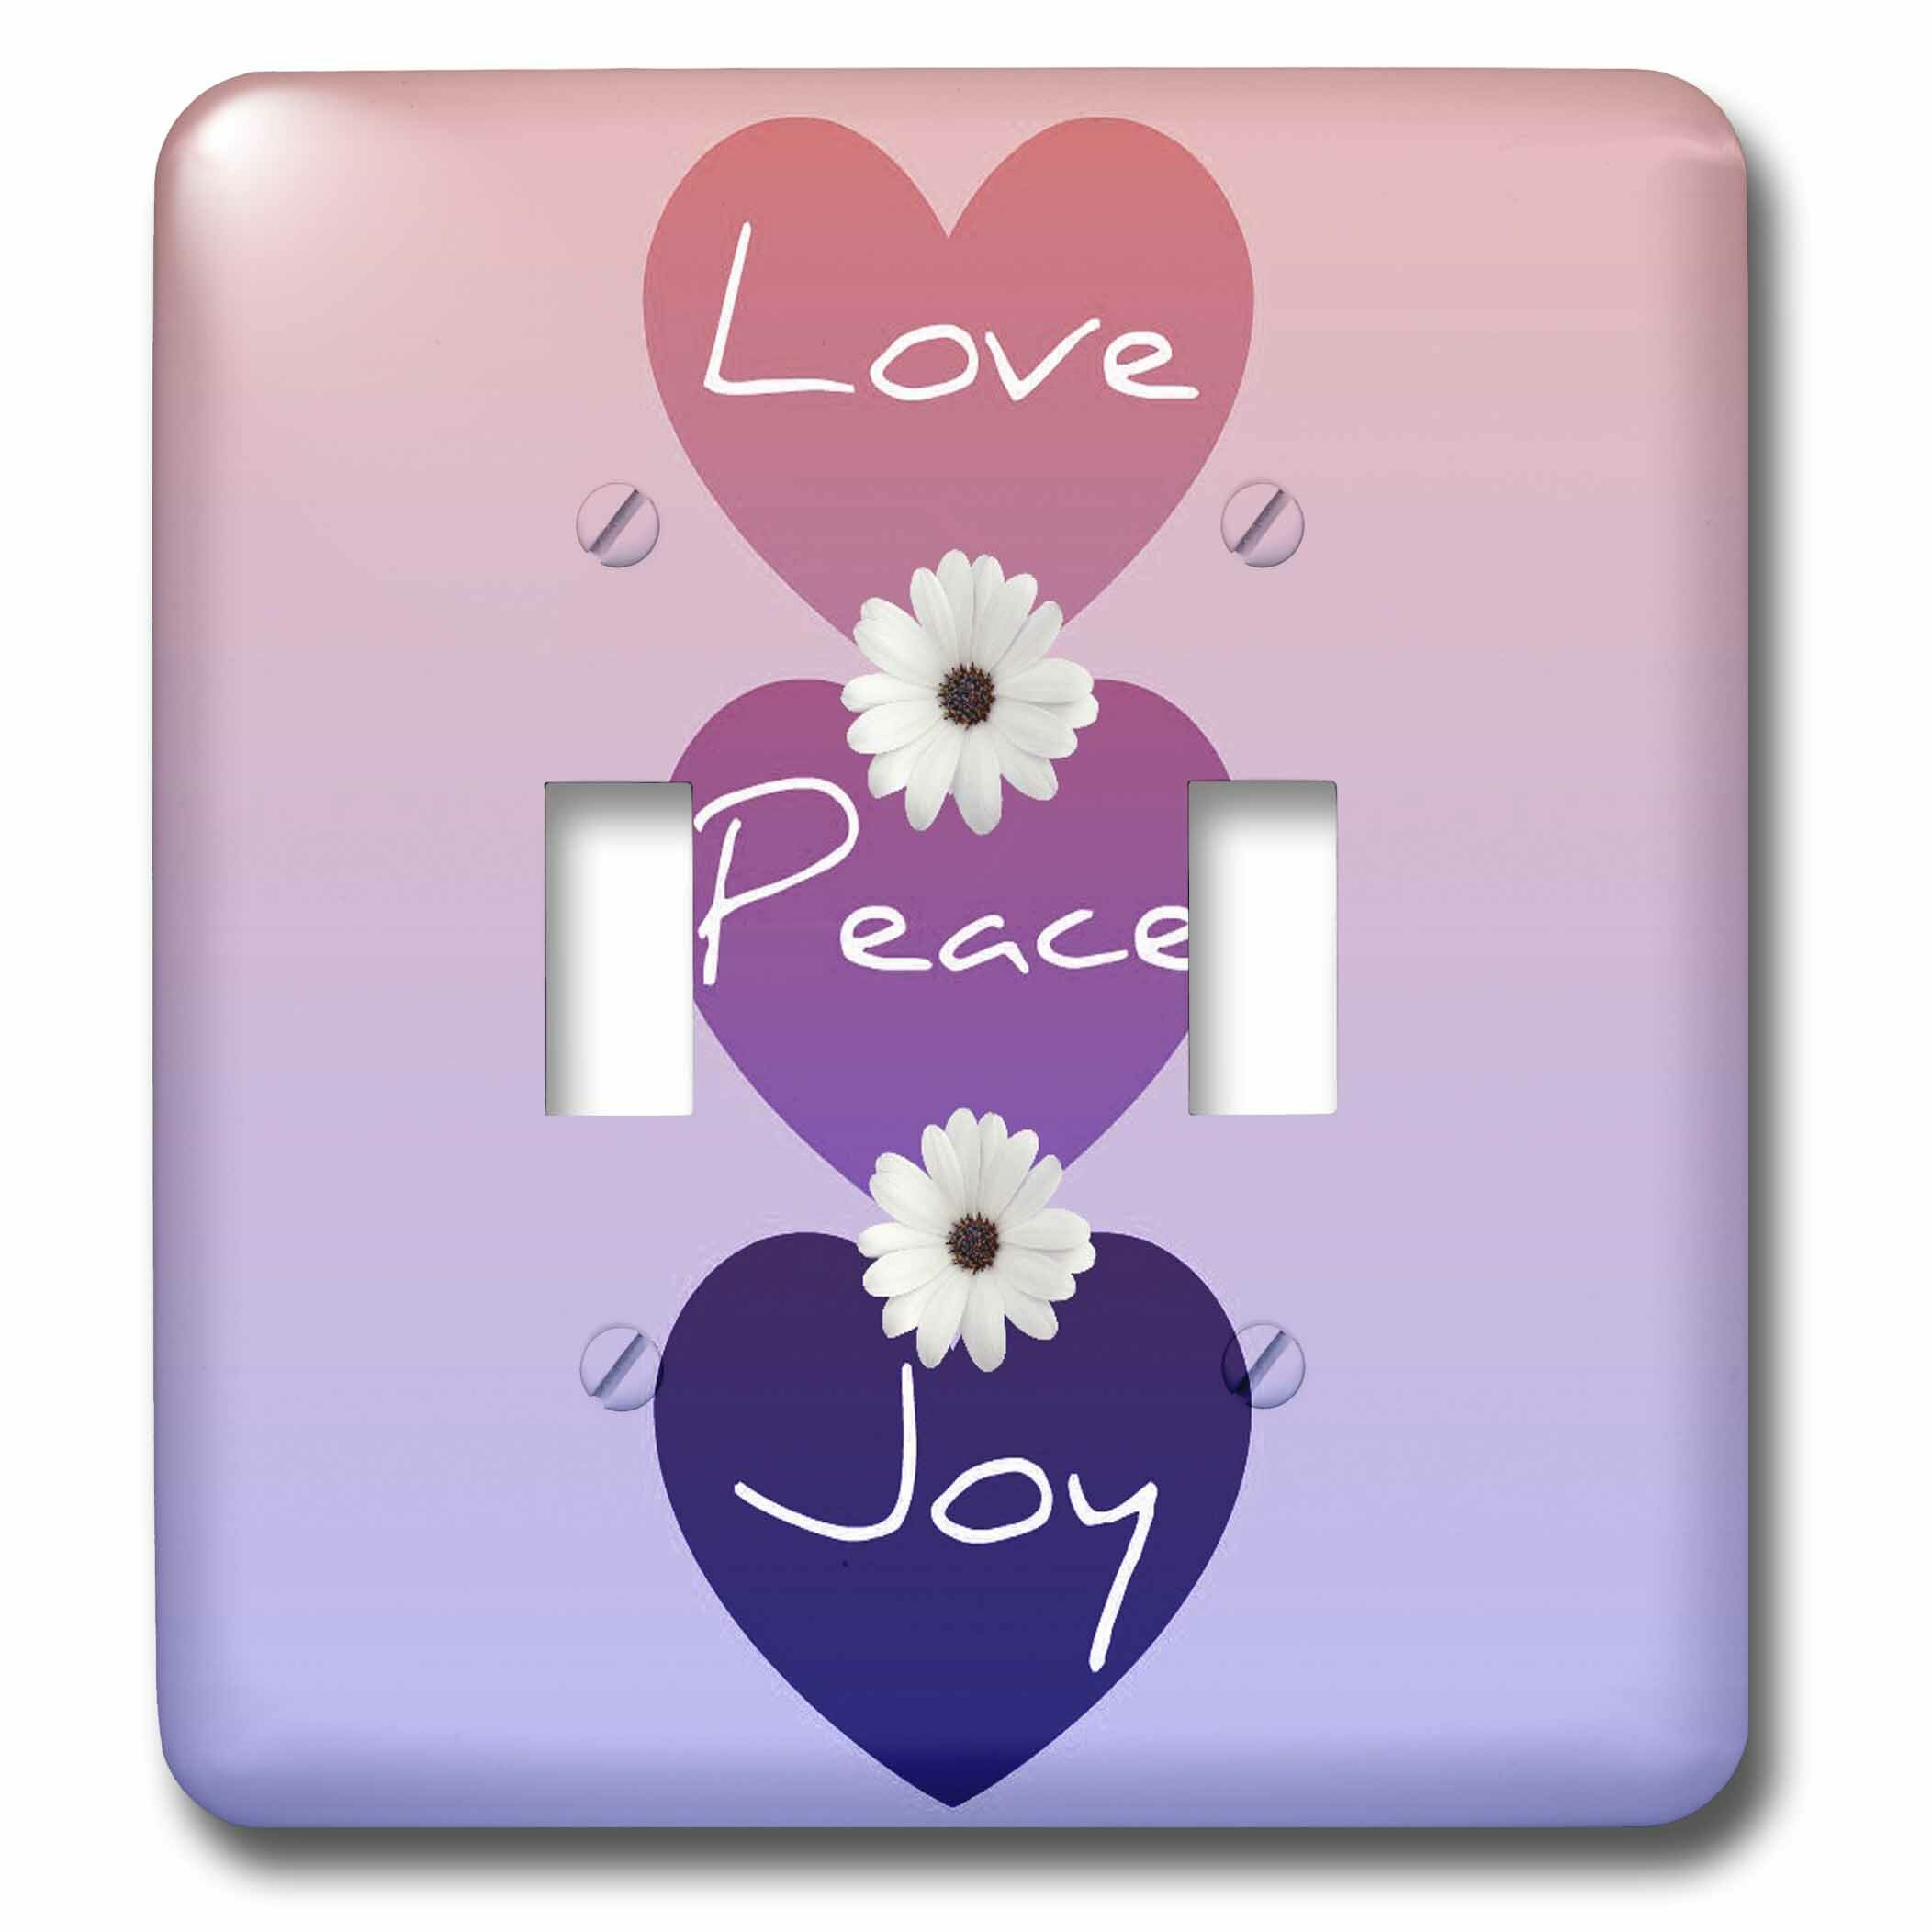 3drose Peace Love Joy Hearts With Flowers 2 Gang Toggle Light Switch Wall Plate Wayfair